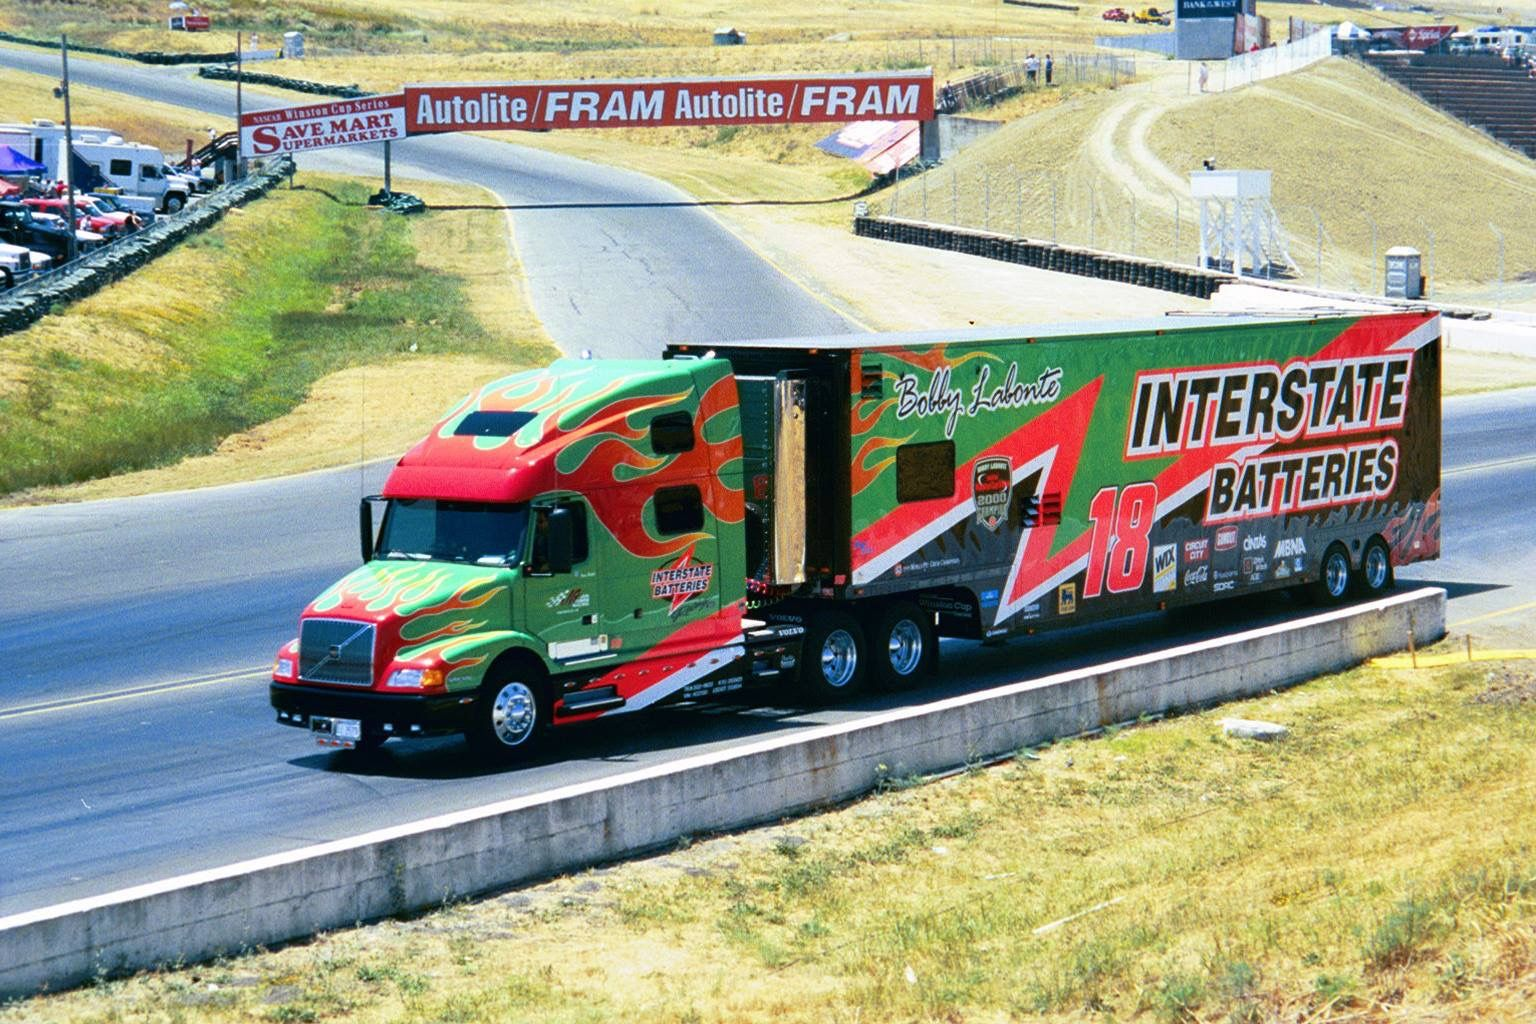 Interstate Batteries Nascar Hauler Transporter Volvo